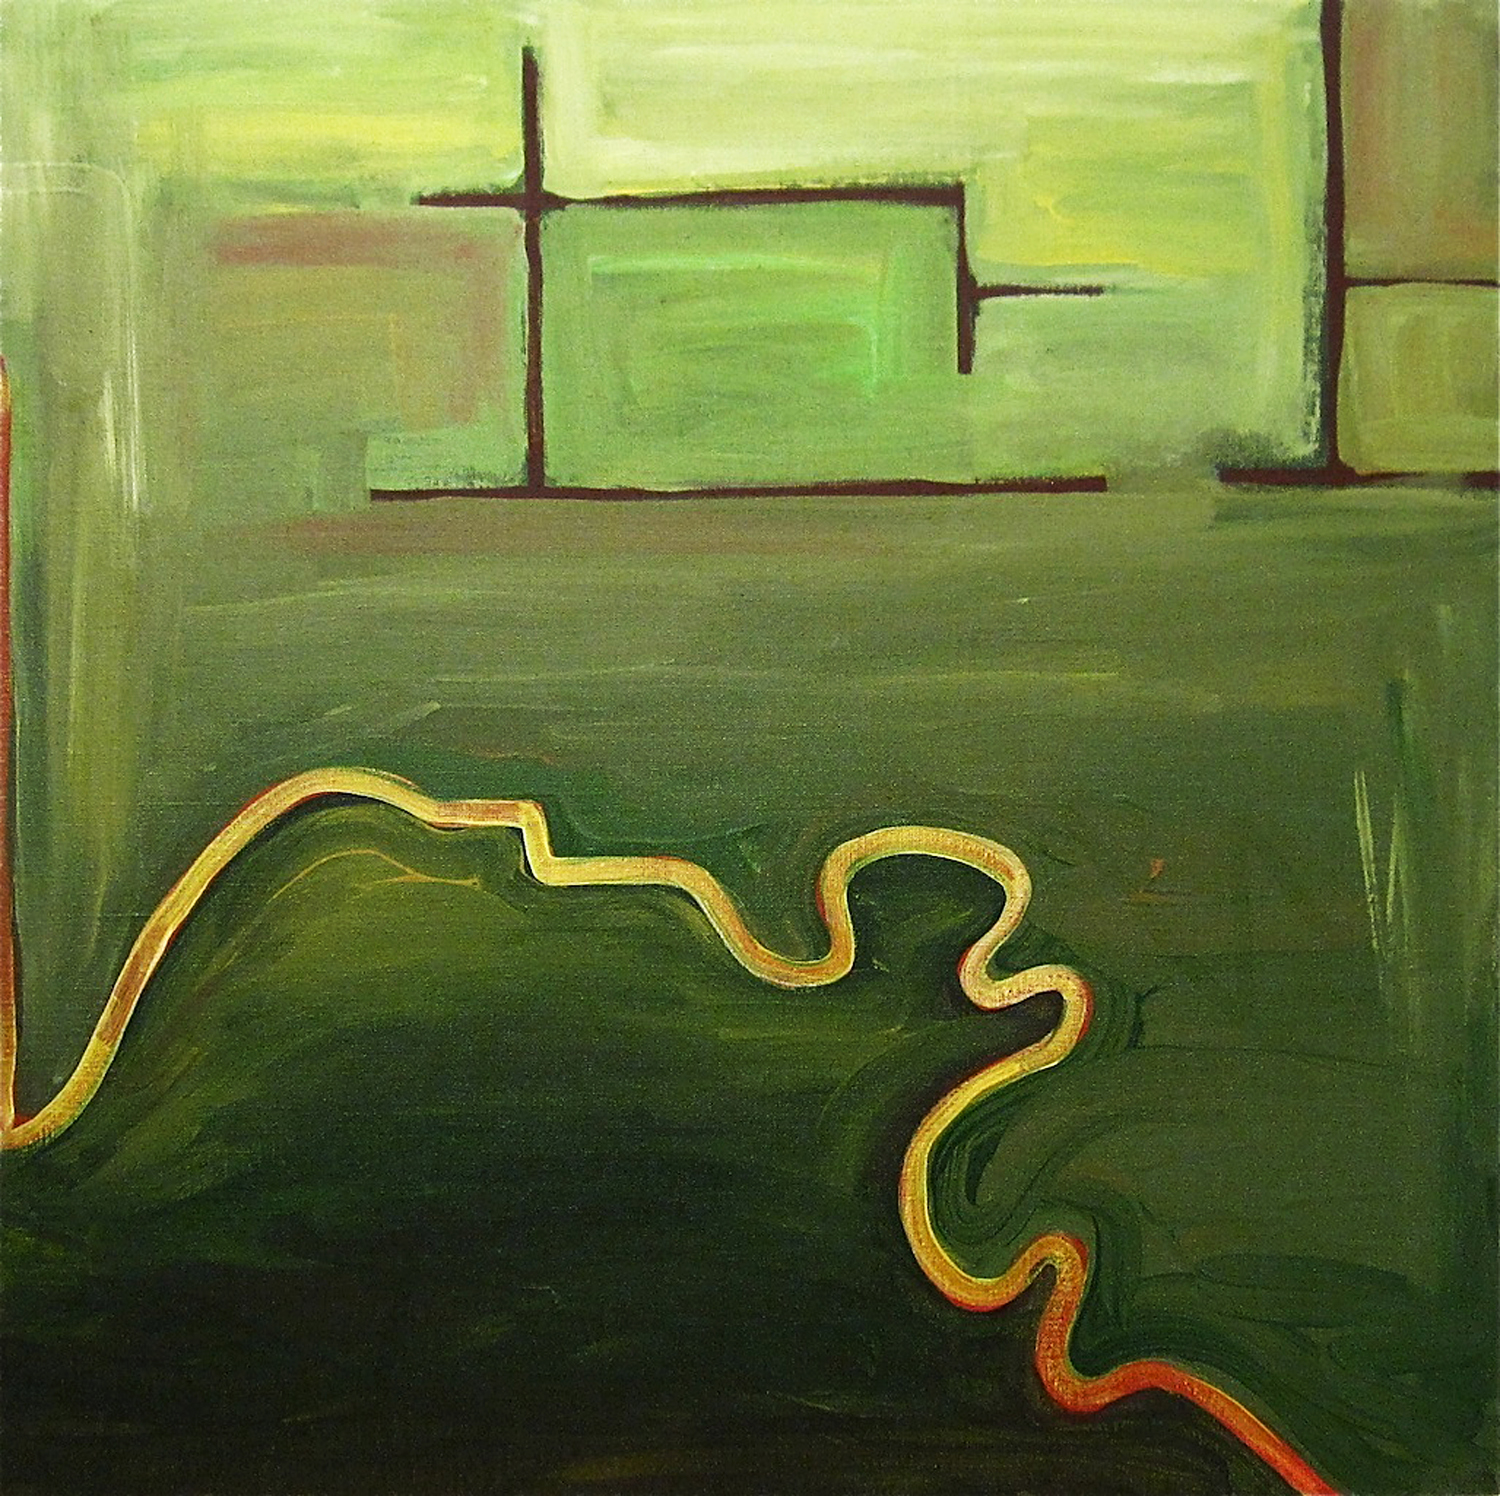 THE PLACE PAINTINGS: Place of Memory